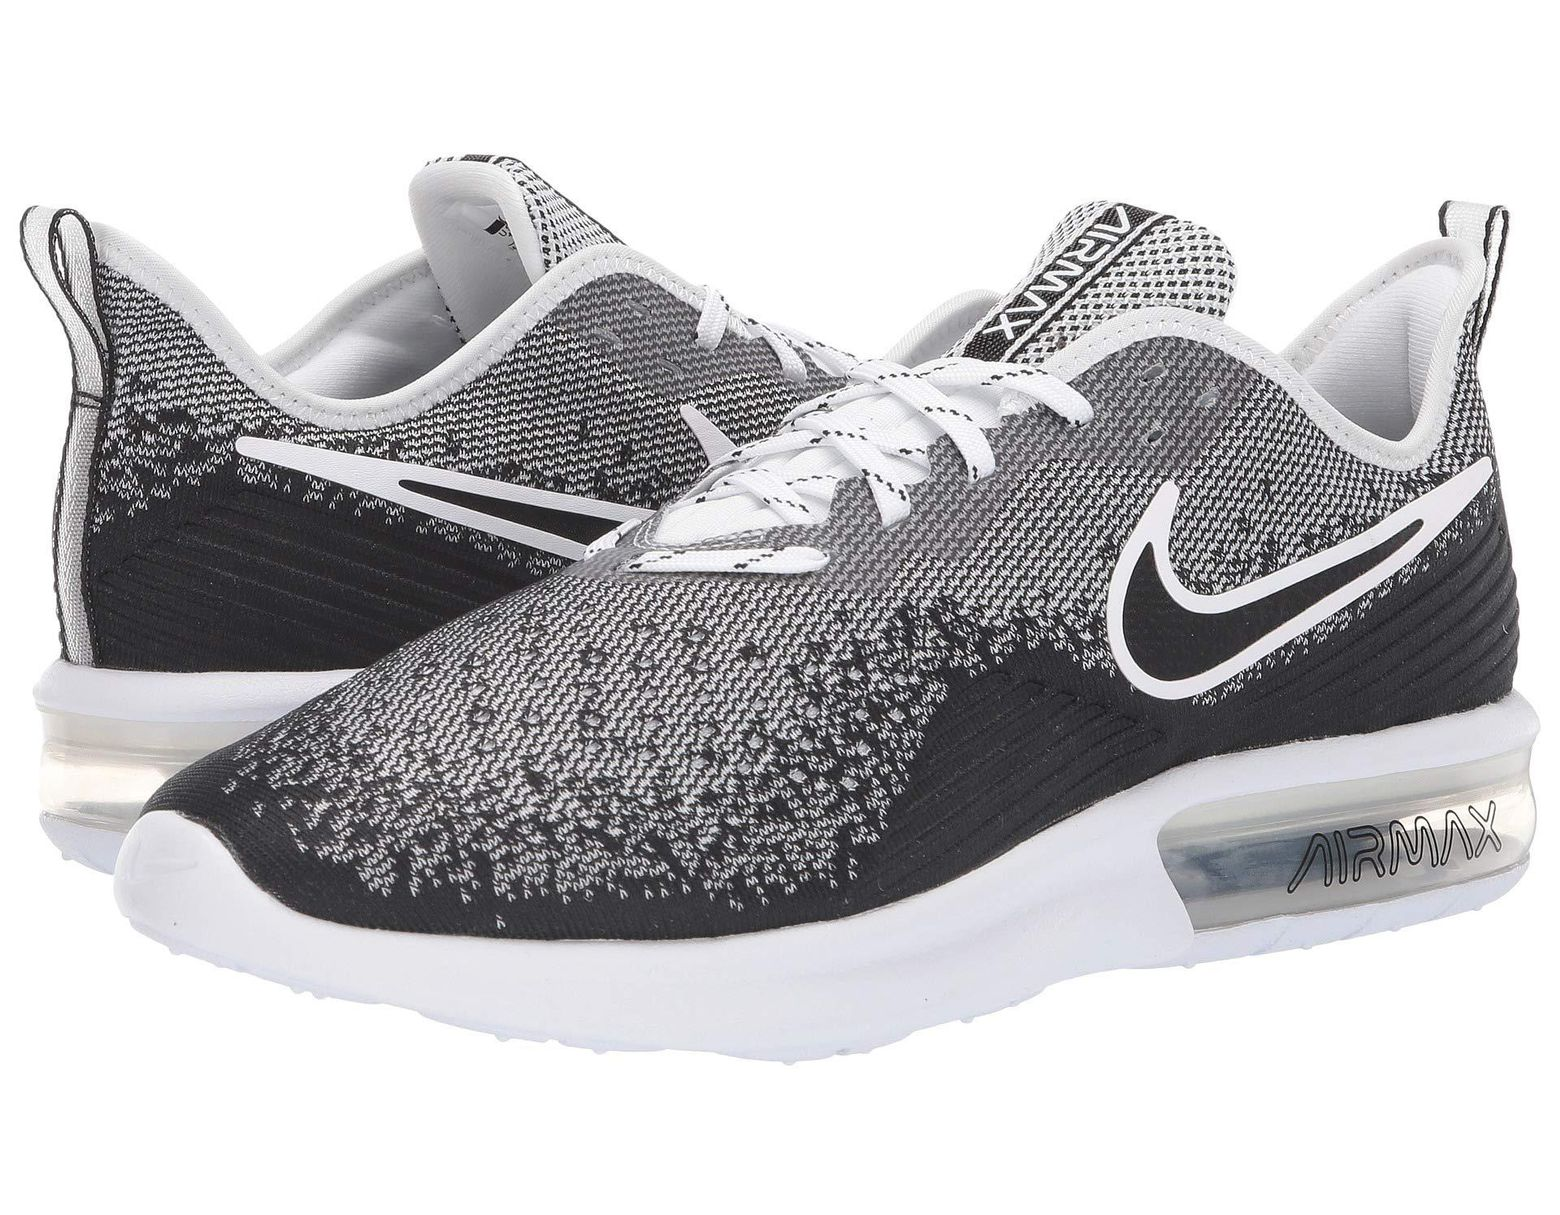 the best attitude c3c81 47562 Nike Air Max Sequent 4 (black black anthracite) Men s Running Shoes in Gray  for Men - Lyst